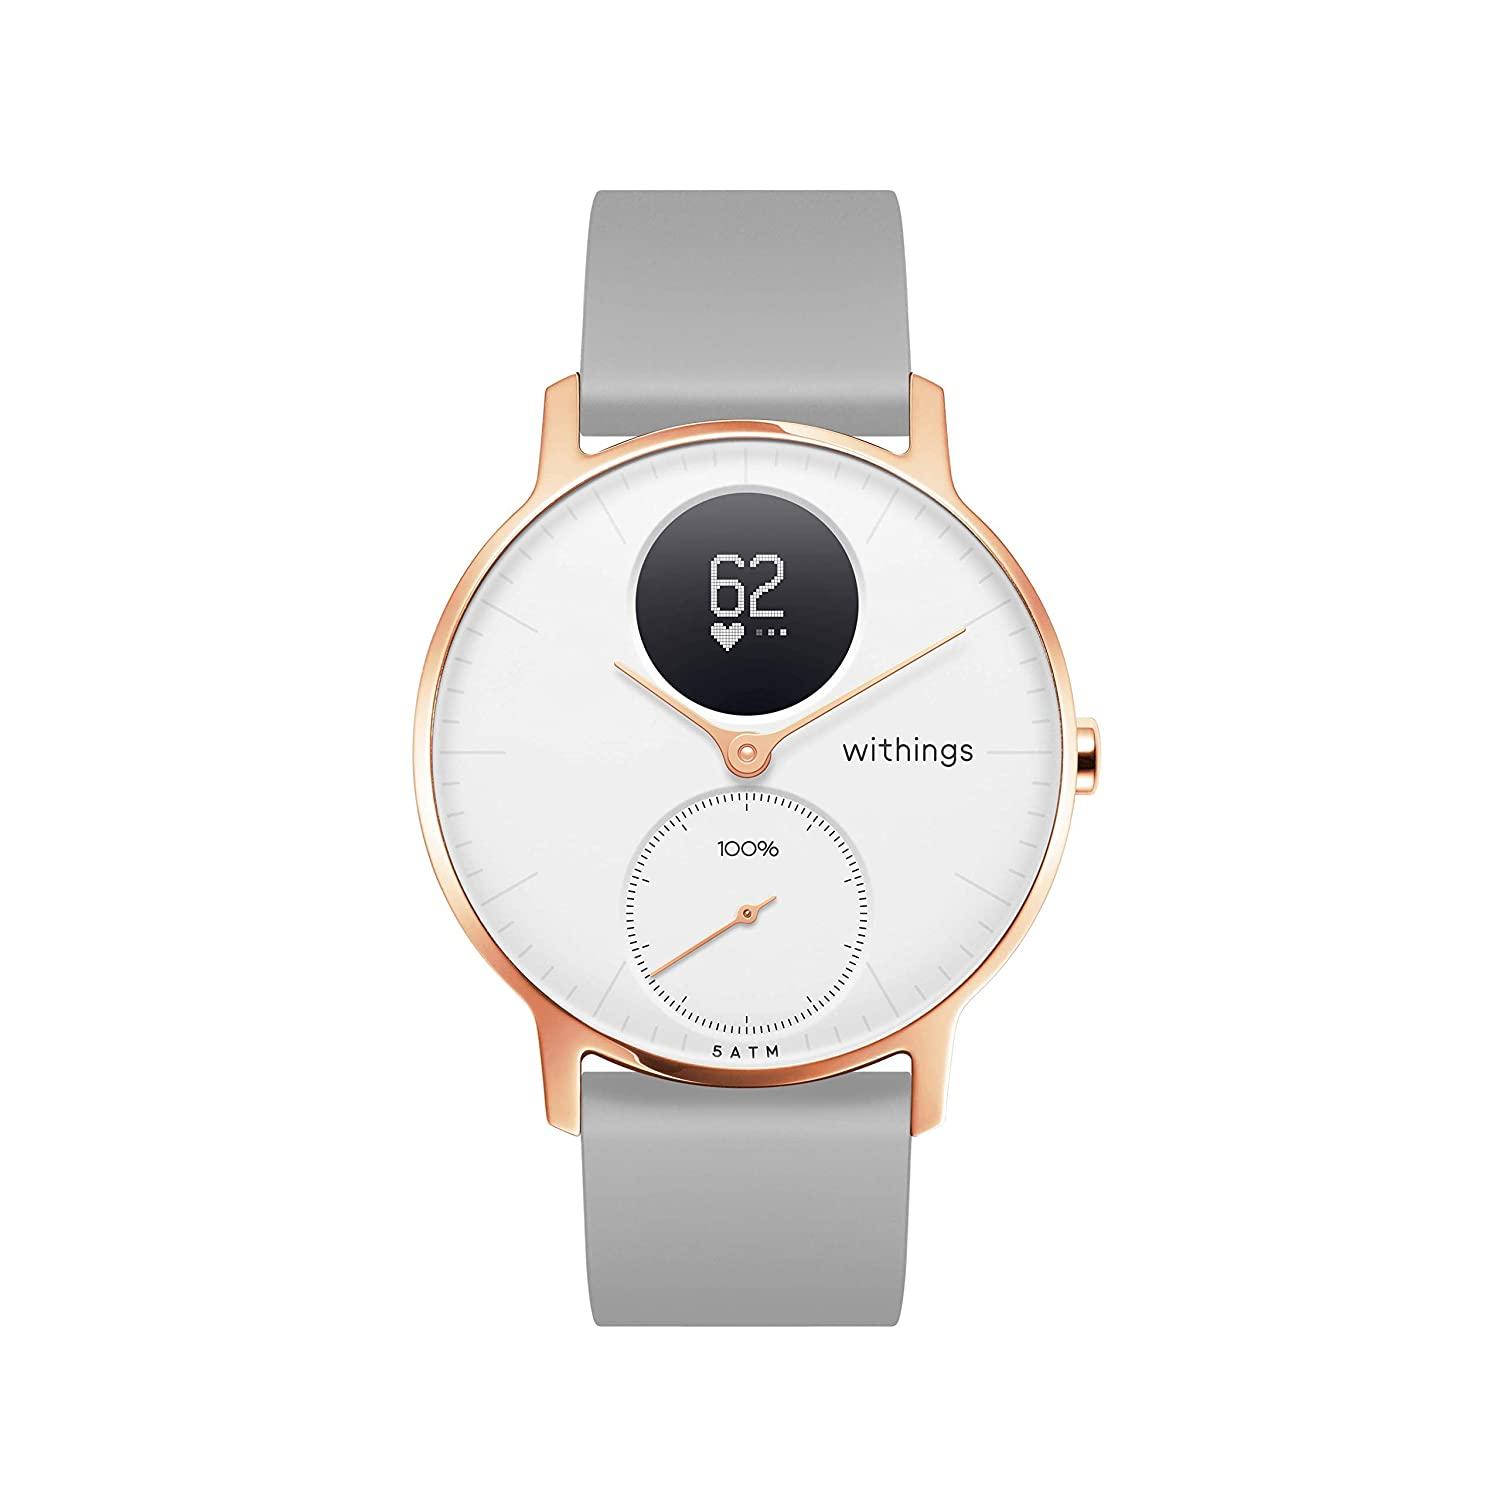 Amazon.com: Withings - Reloj inteligente híbrido de acero HR ...